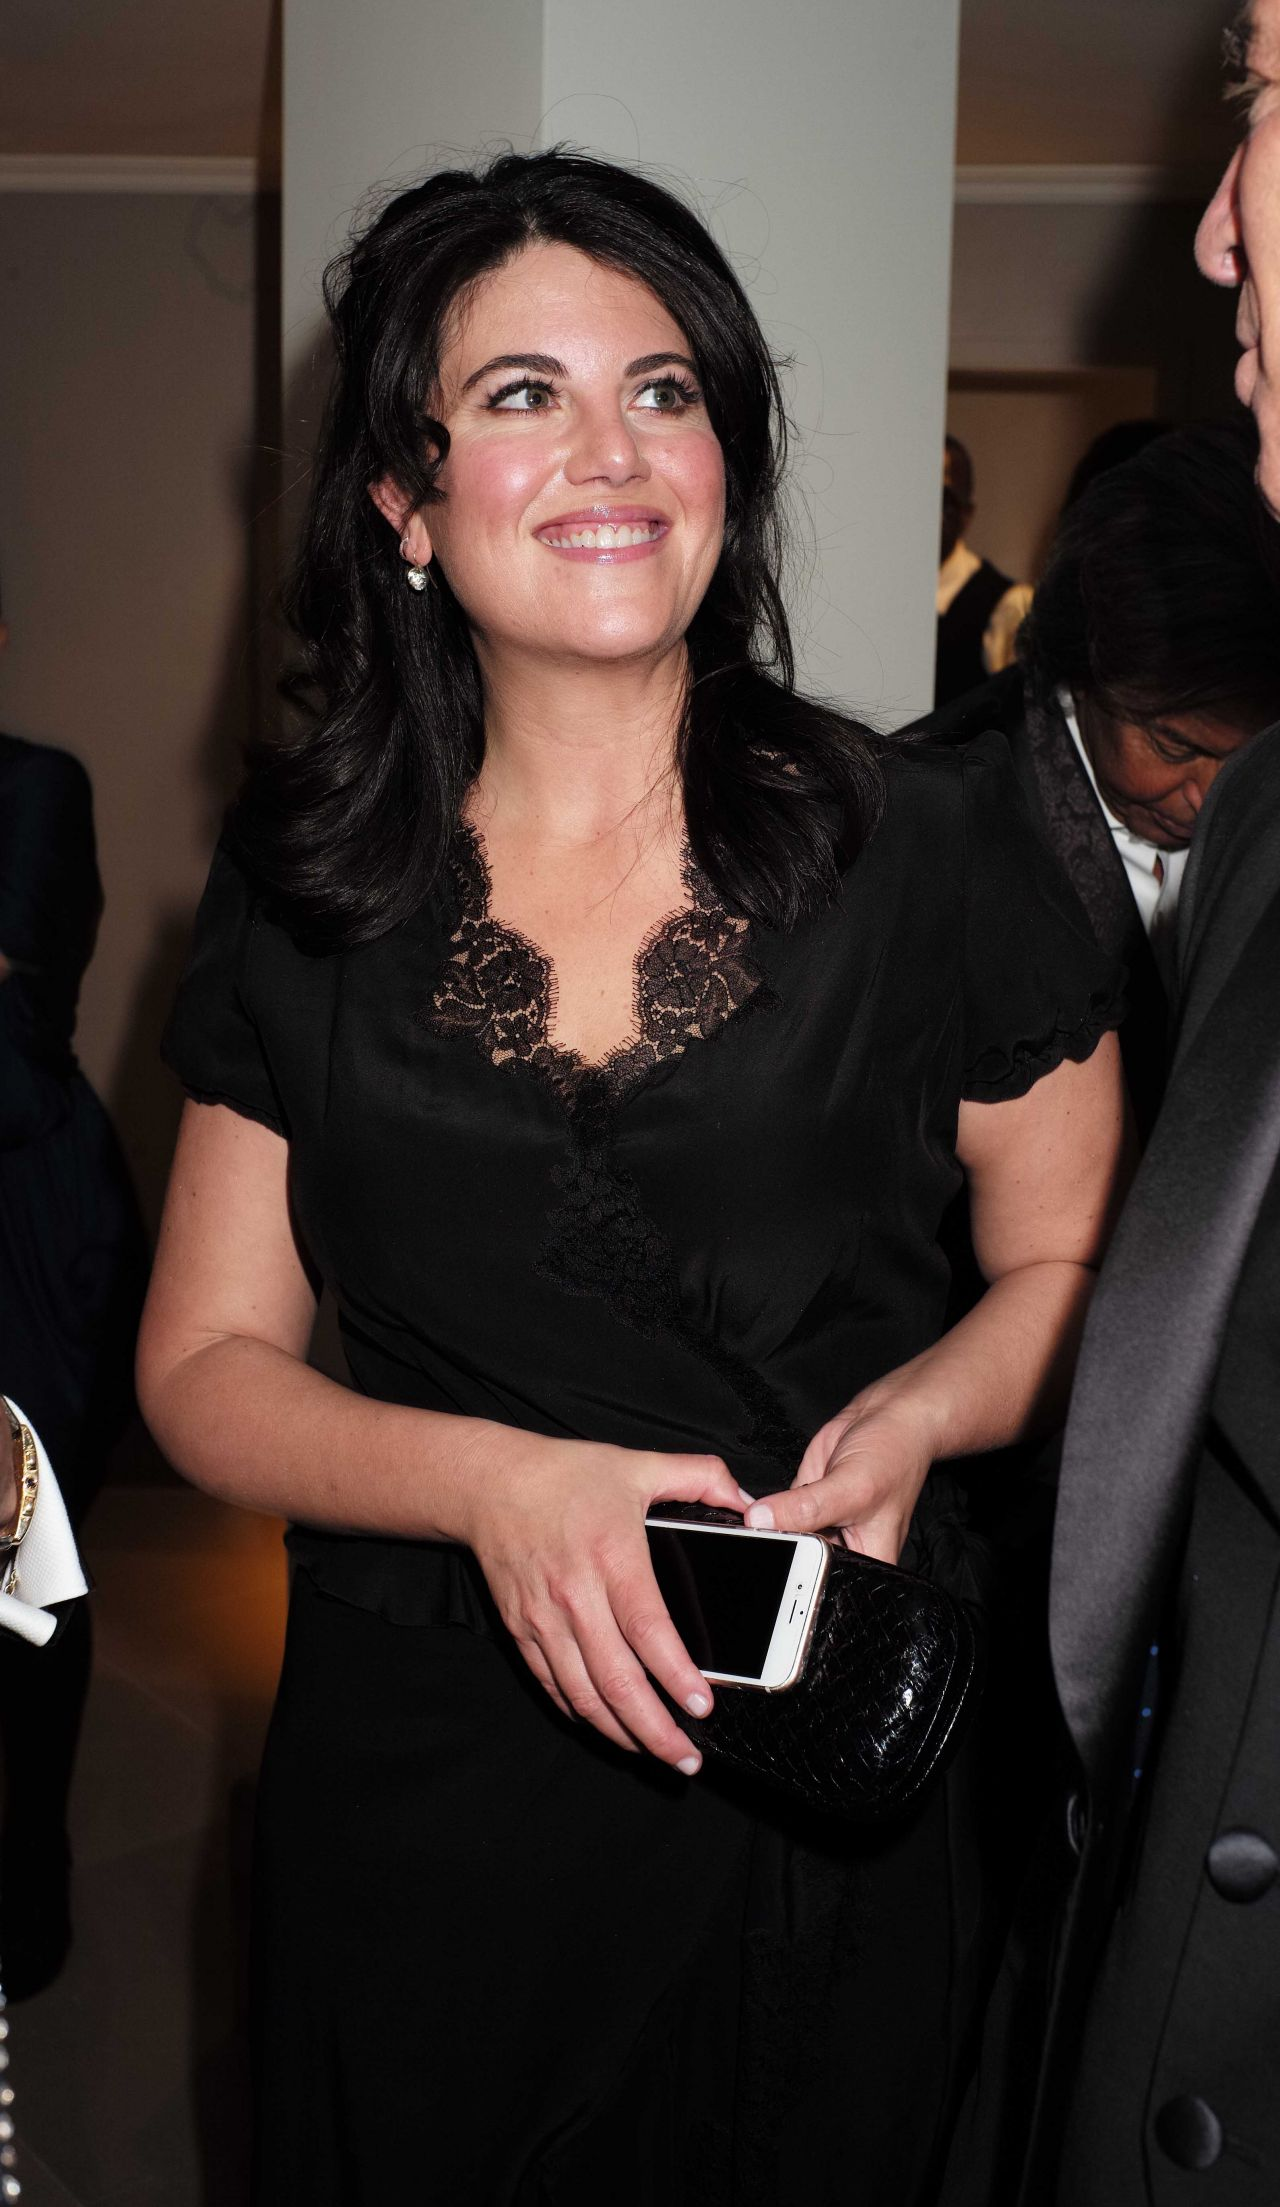 Monica Lewinsky Despite The Falling Snow Charity Gala Screening In London March 2016